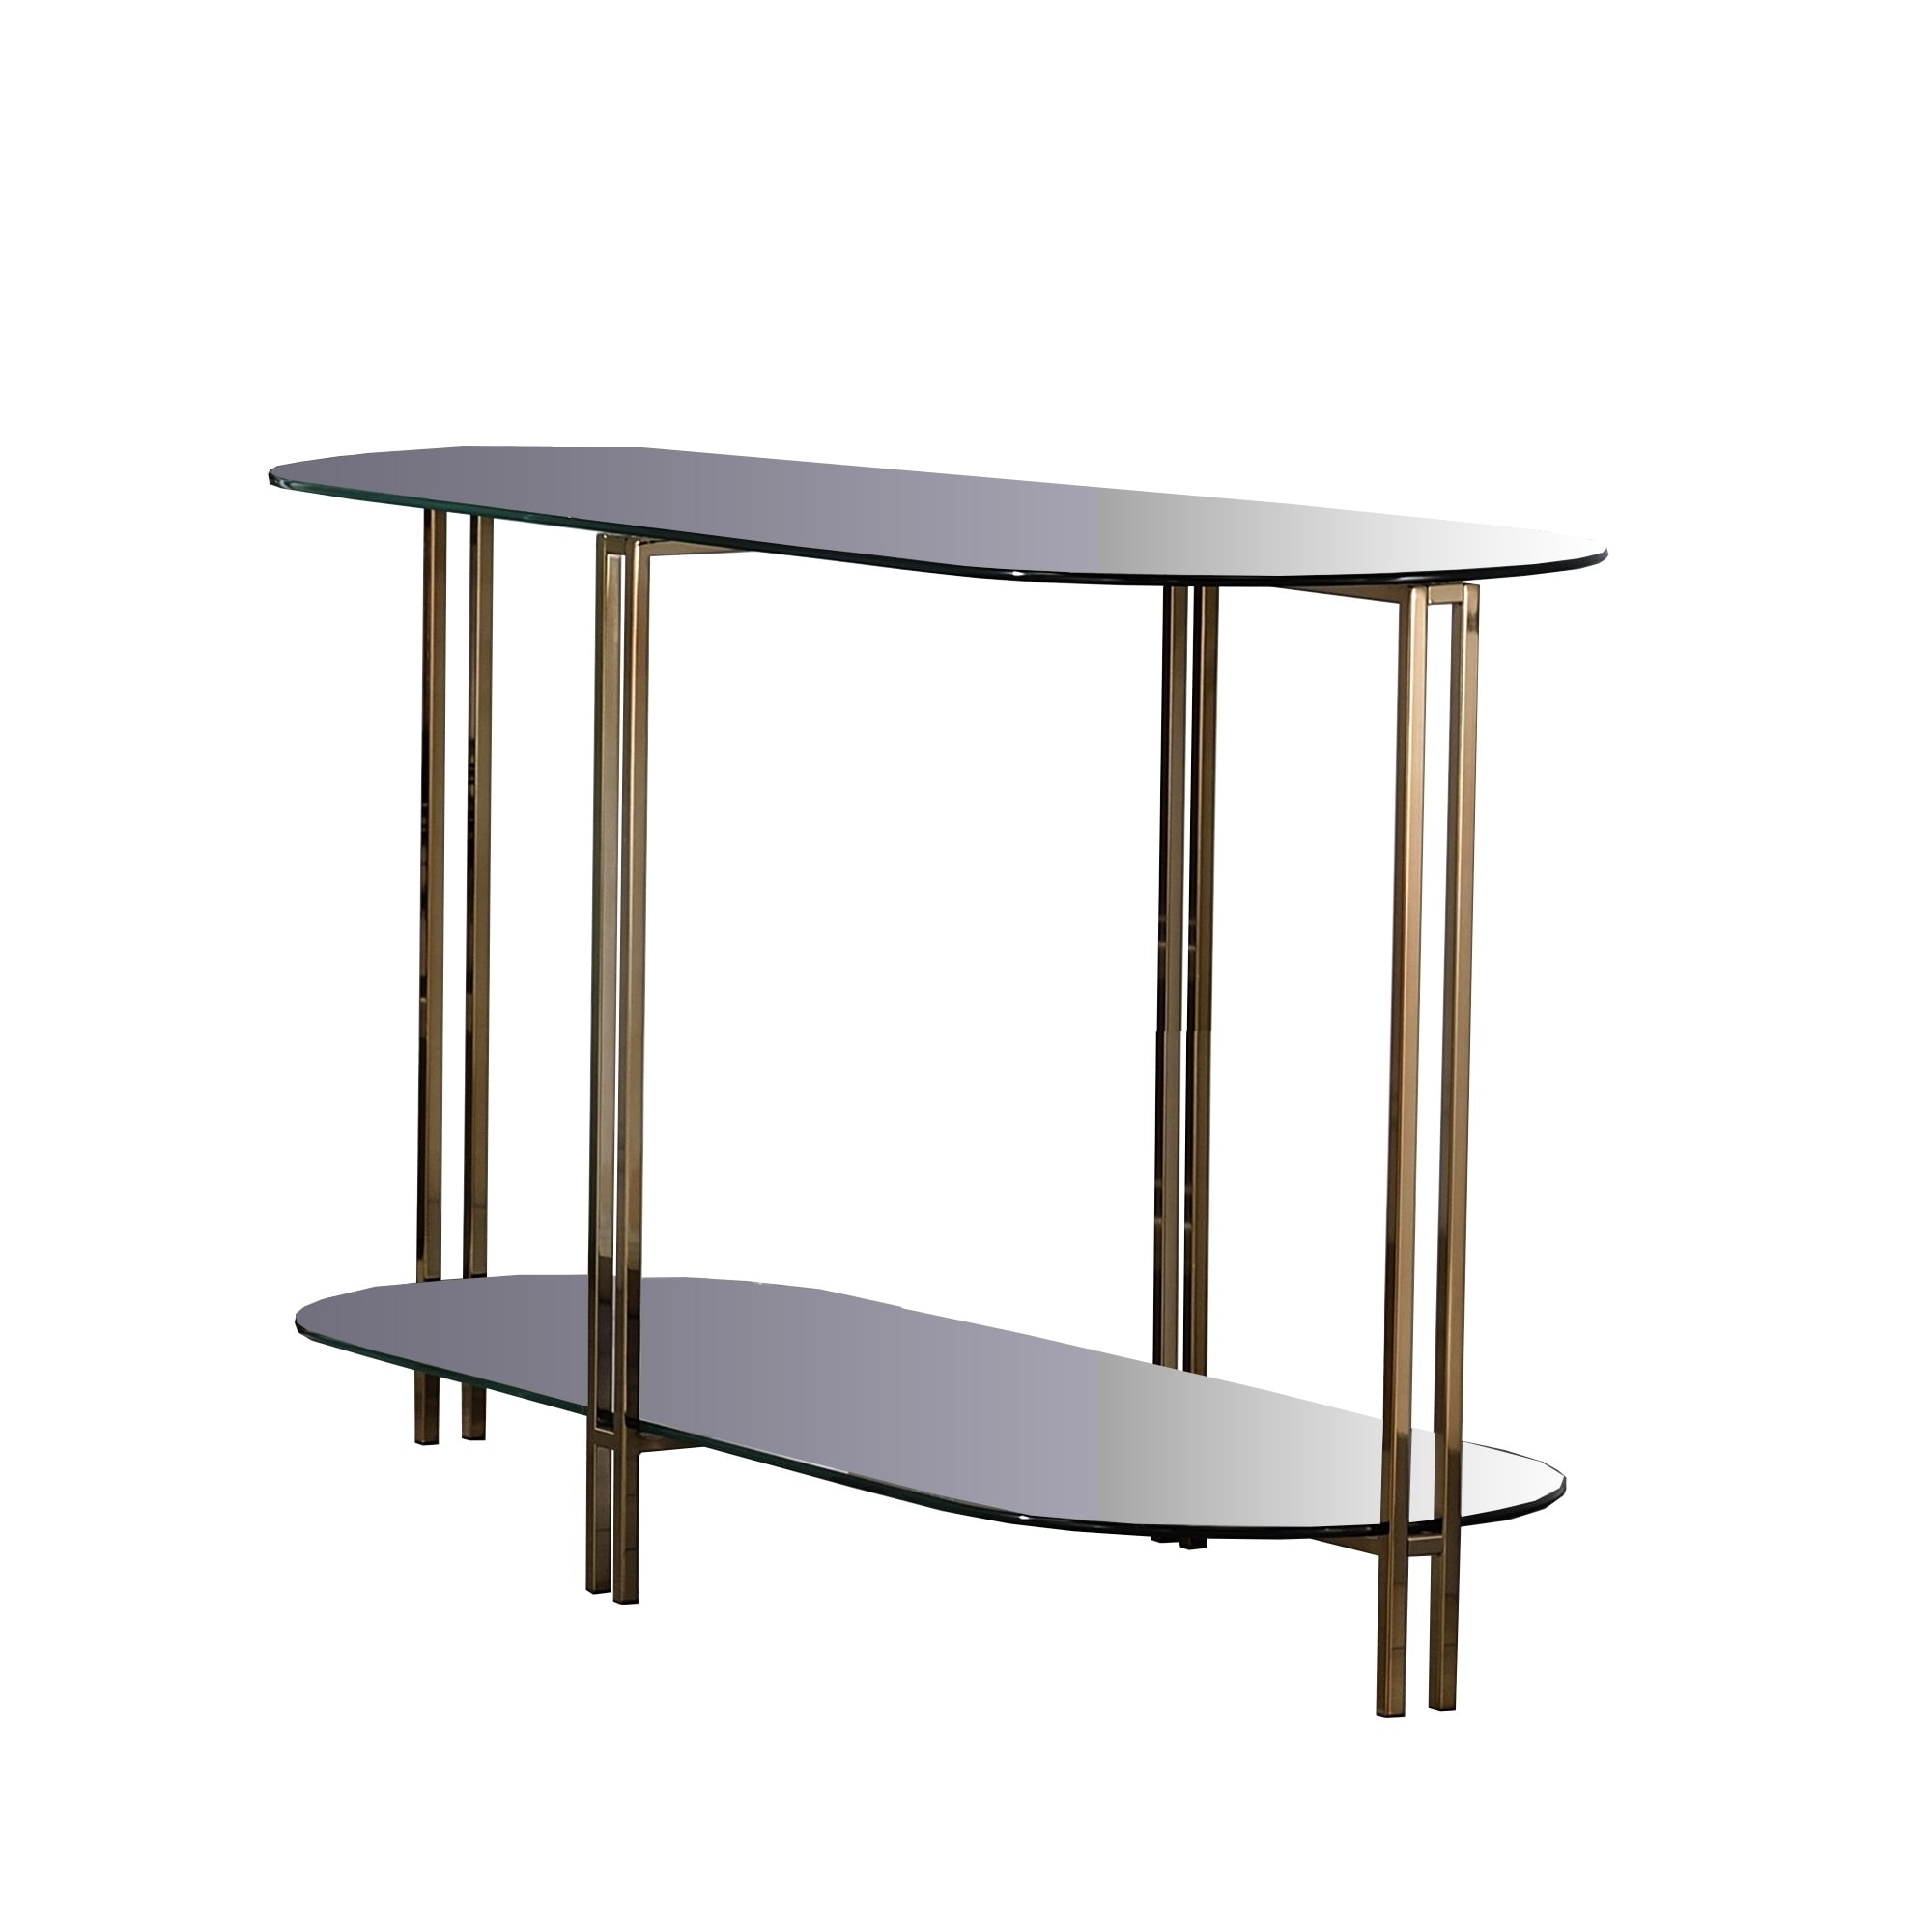 Sofa Table With Glass Top And Open Bottom Glass Shelf Gold On Sale Overstock 30968316